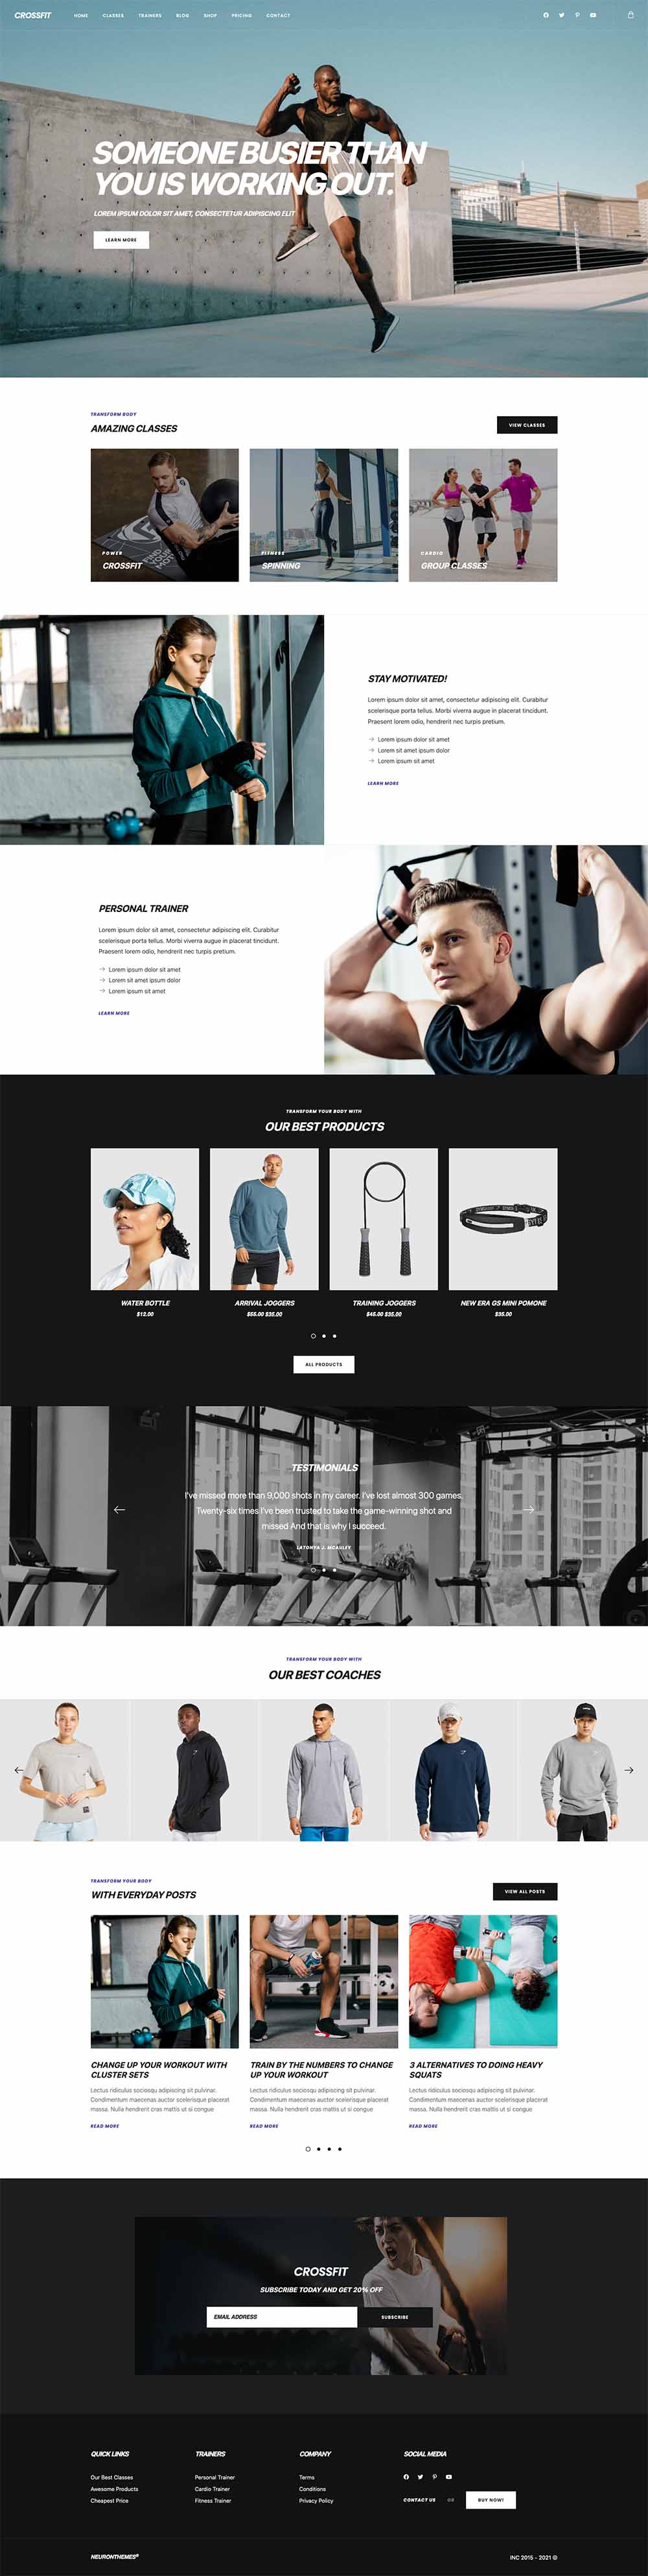 Crossfit - Fitness and Gym Demo Website for WordPress